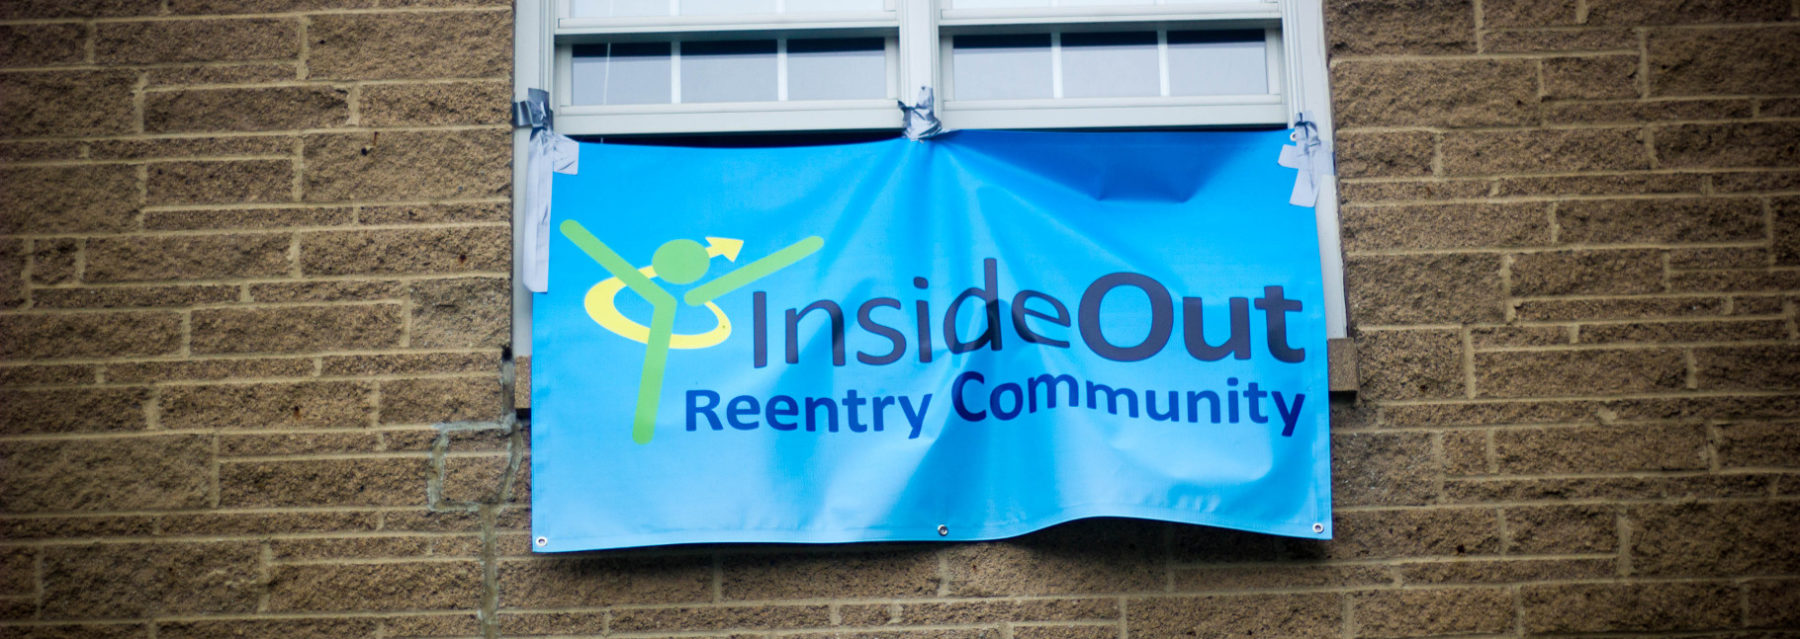 InsideOut Reentry